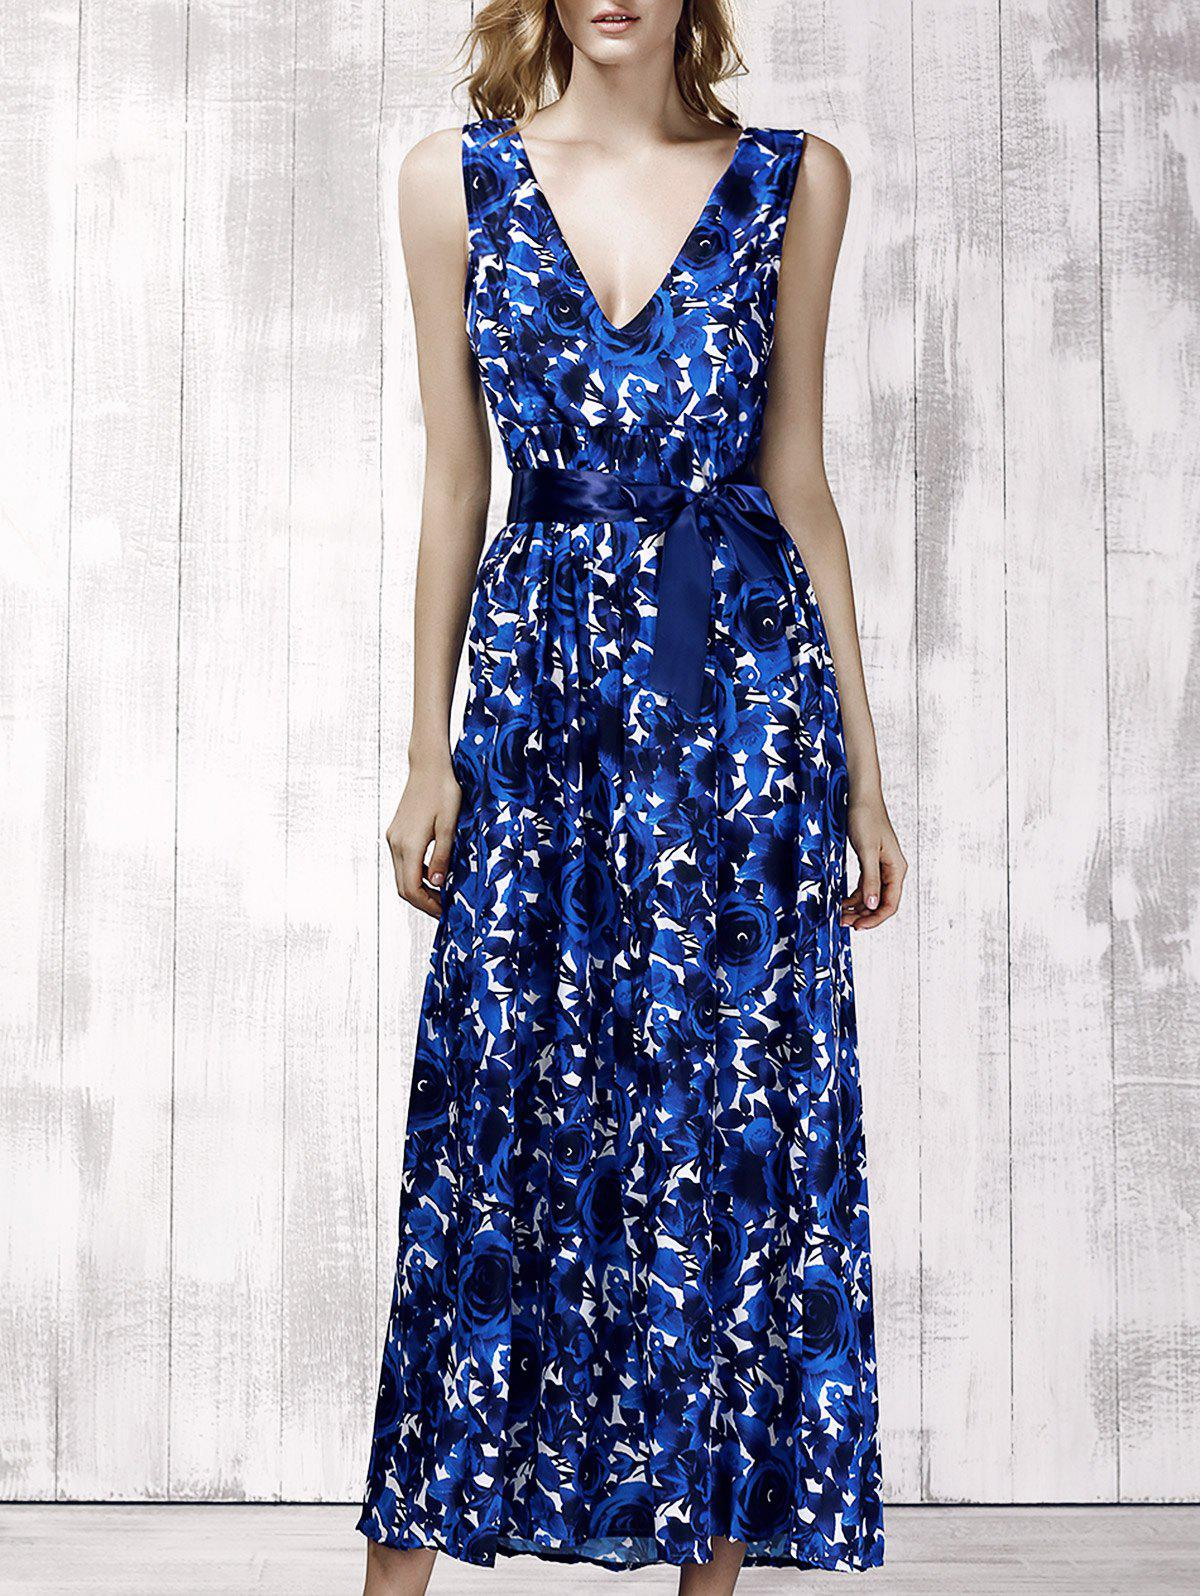 Stylish Women's Plunging Neck Sleeveless Floral Print Maxi Dress